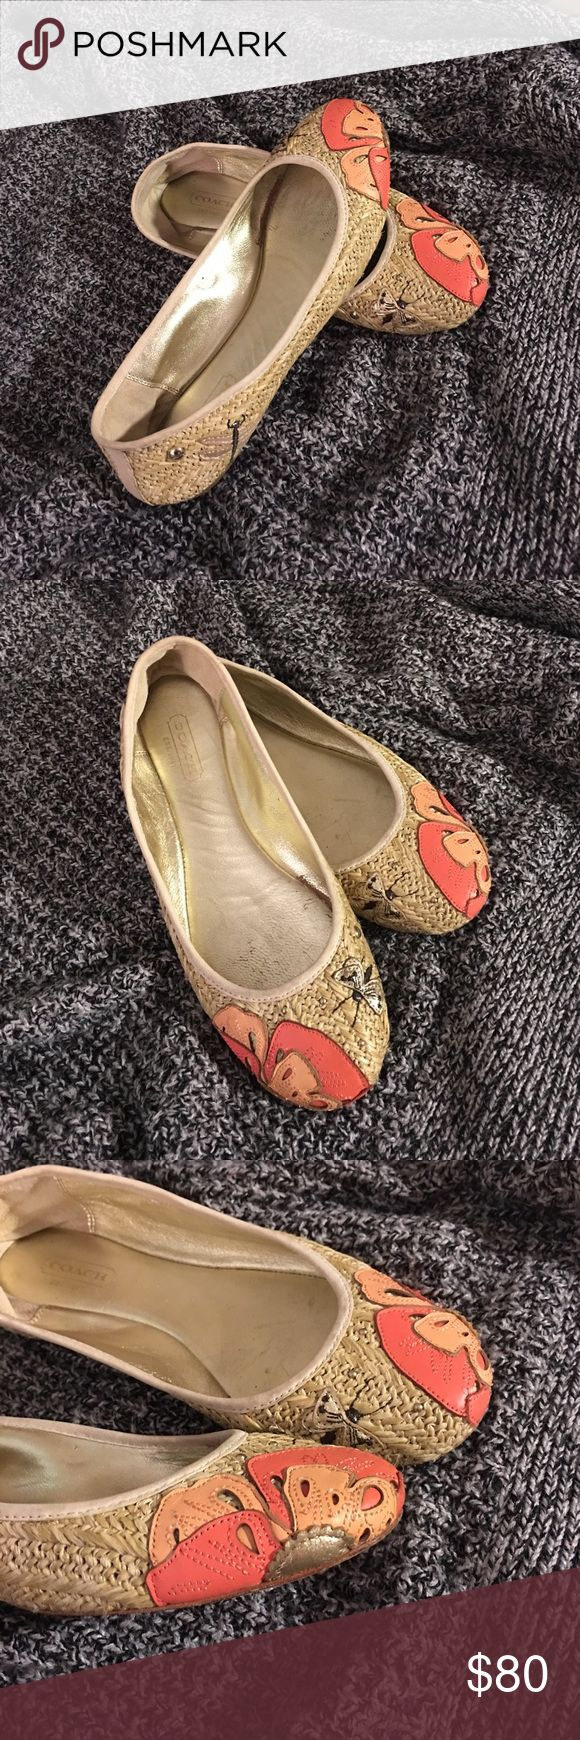 Coach Flats Size 6 Beautiful coach flat shoes. Preloved and used couple of times. Has sign of use. Still in great condition. Coach Shoes Flats & Loafers